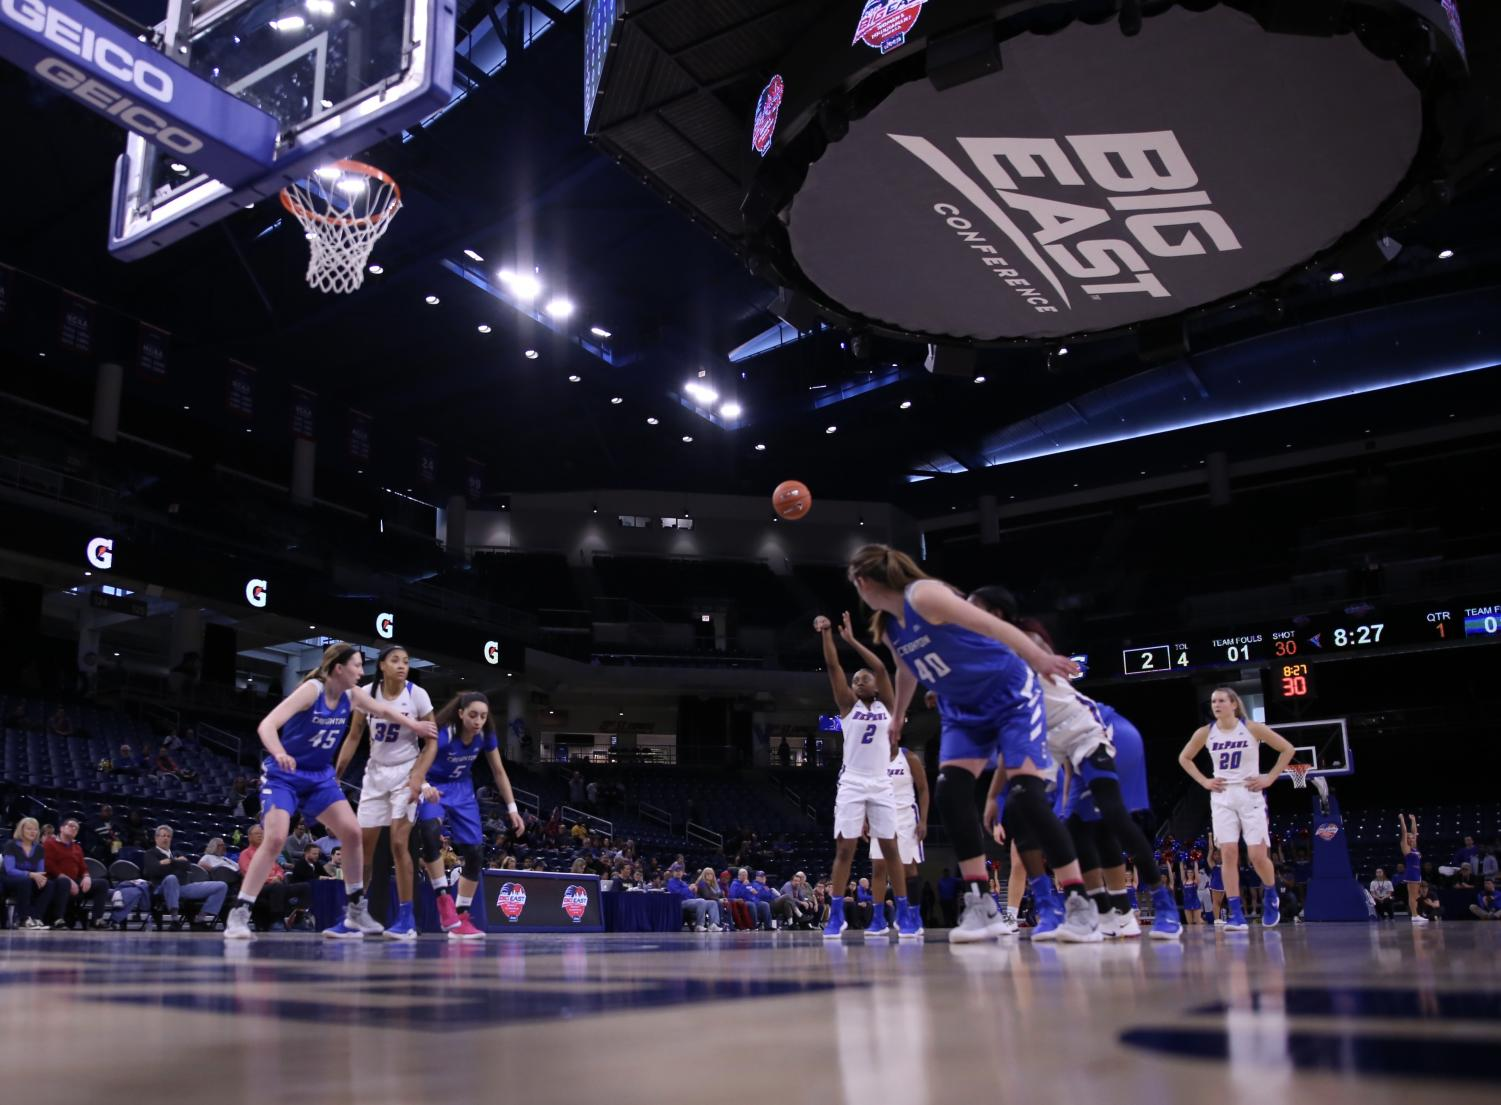 DePaul+freshman+Maya+Stovall+attempts+a+free+throw+during+Monday+night%E2%80%99s+game+at+Wintrust+Arena+in+front+of+a+reported+attendance+of+1%2C853+fans.+Alexa+Sandler+%7C+The+DePaulia